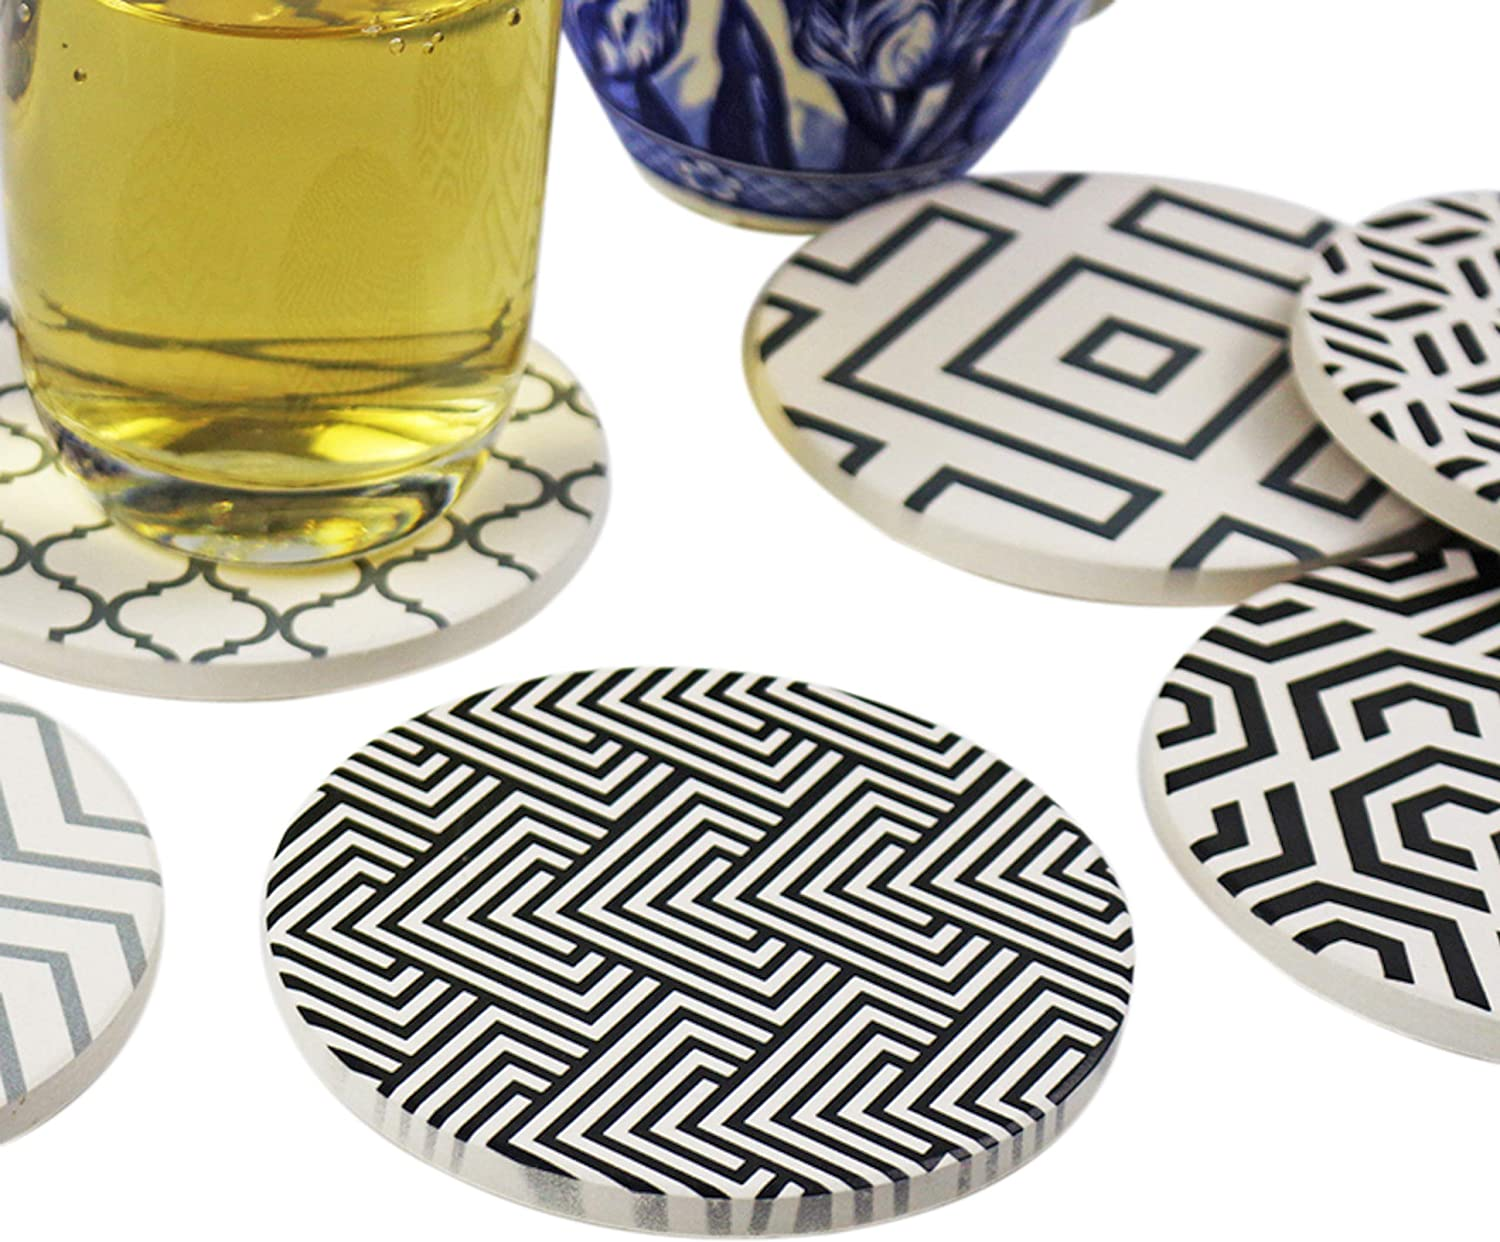 Absorbent coasters for drinks with cork back, used on coffee tables for living room as kitchen mat, home decor, living room decor, office decor, desk decor and housewarming gifts